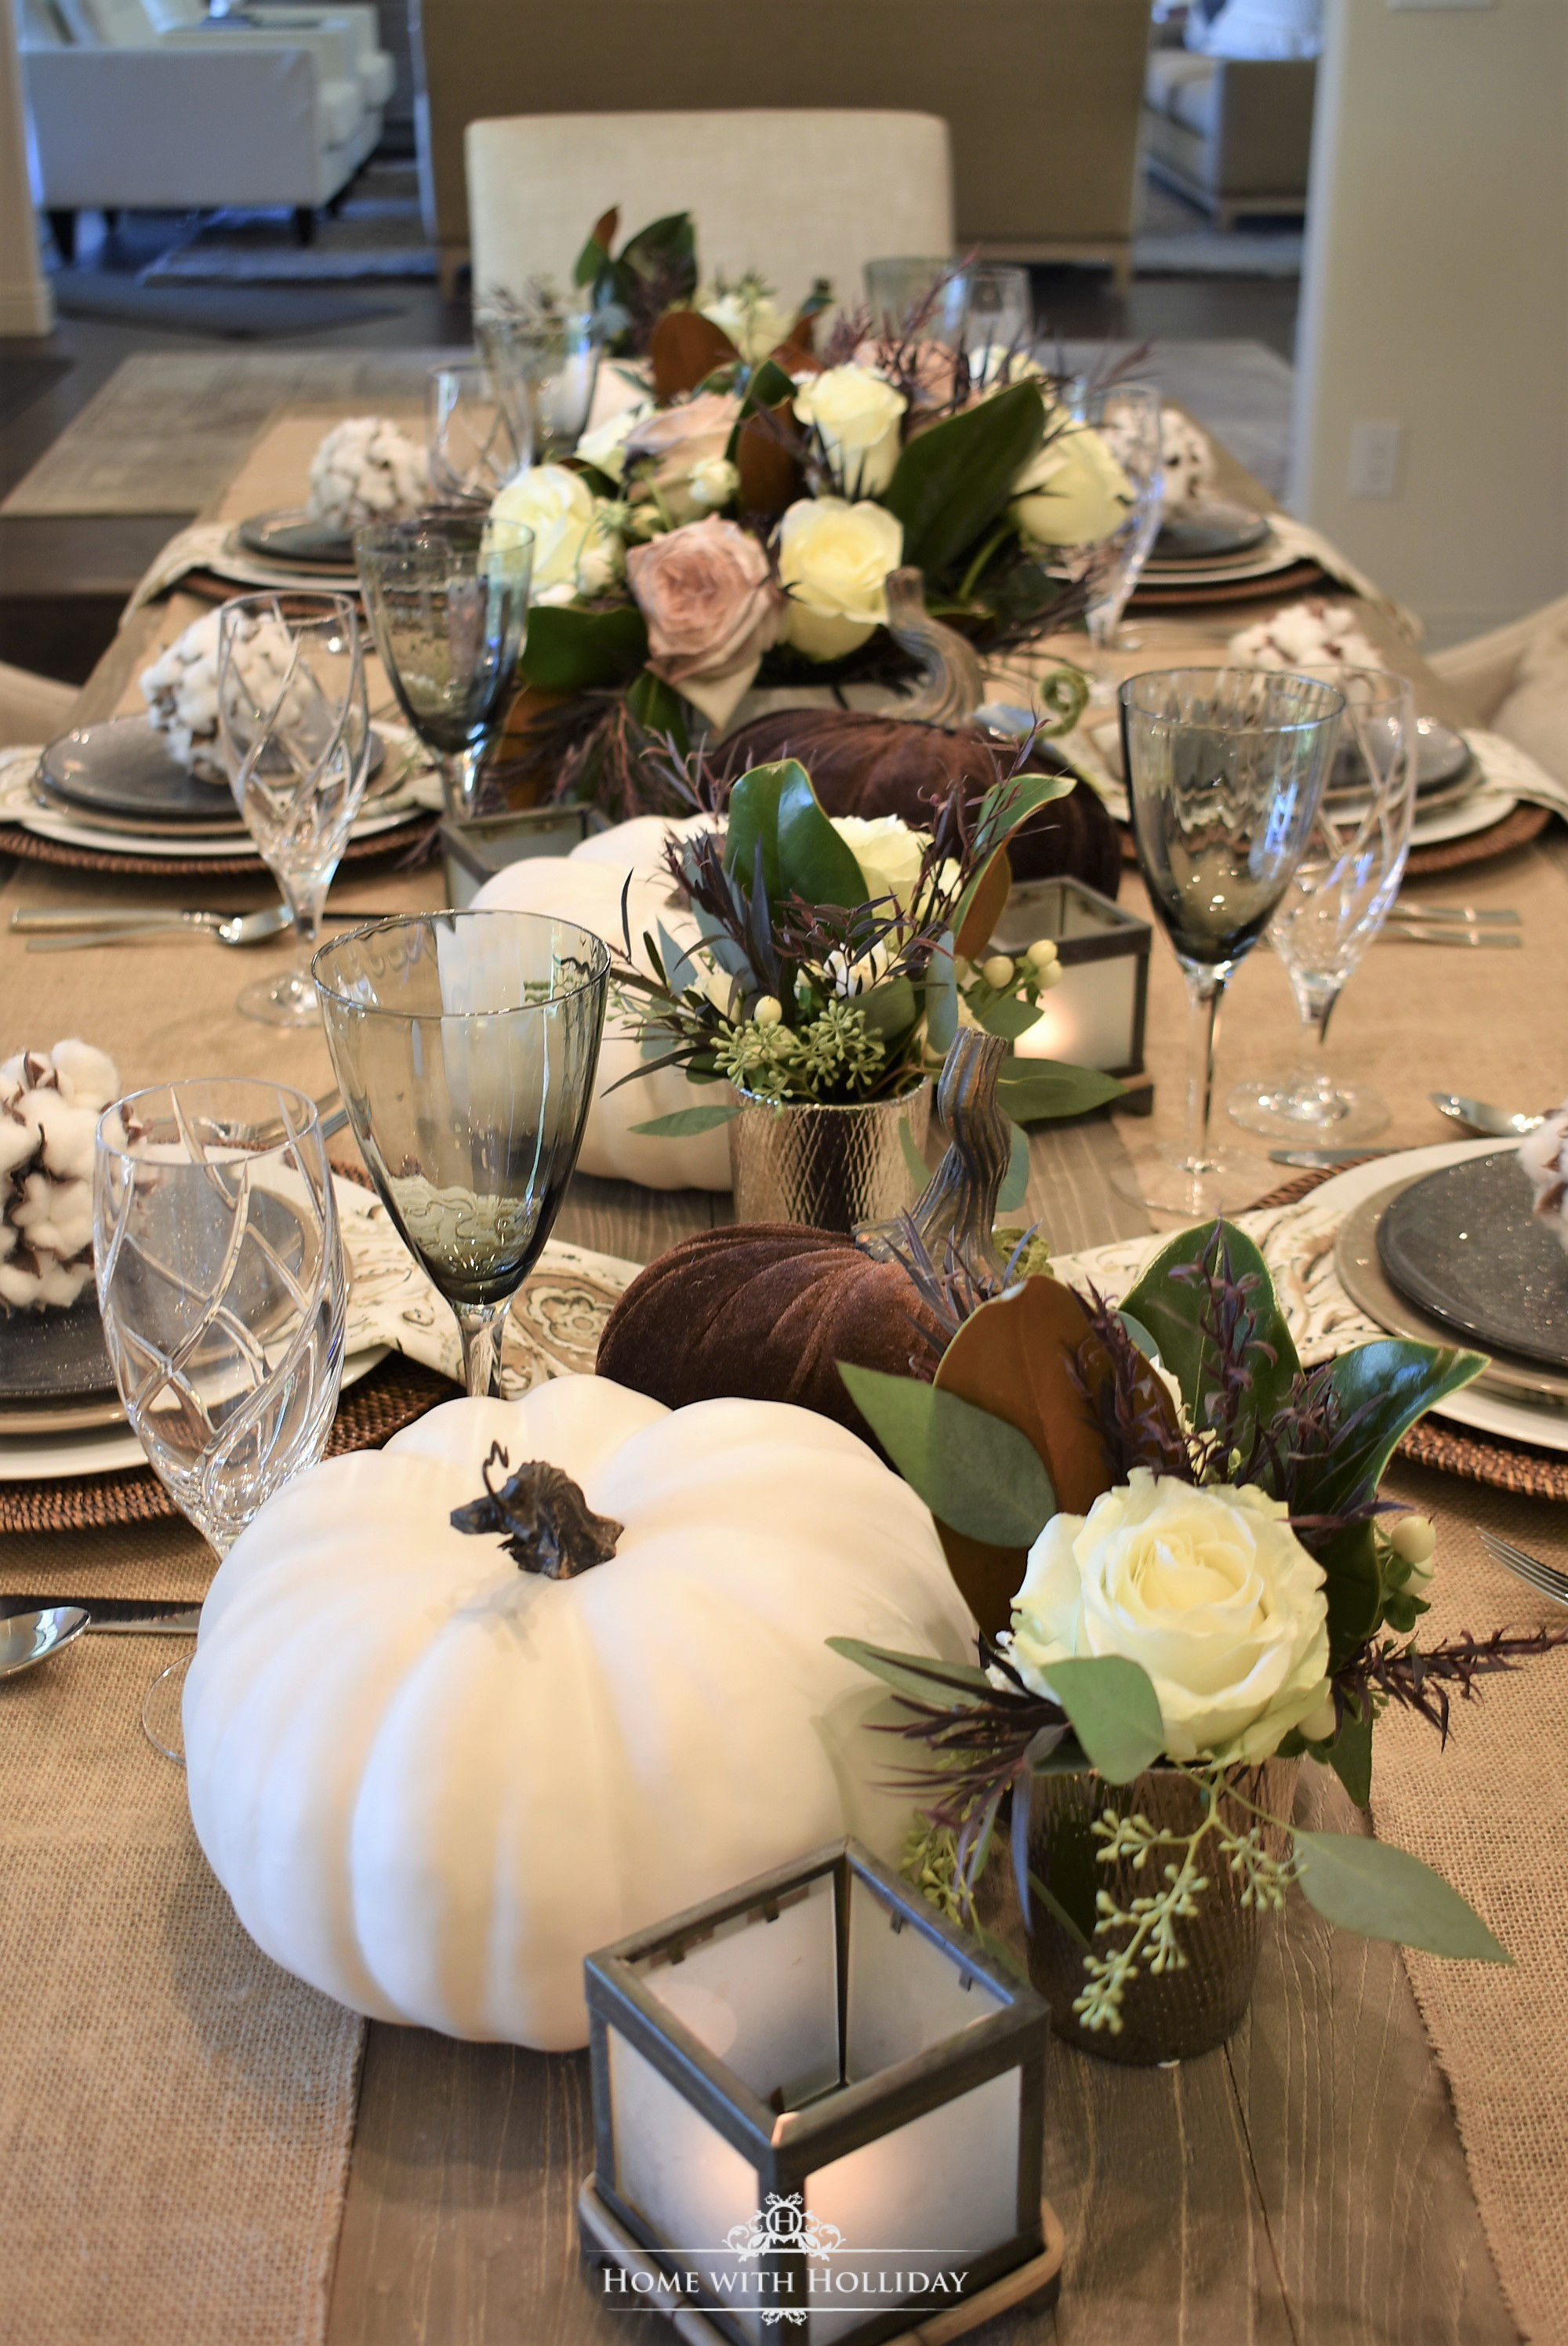 Fall Table Setting with Brown and White Pumpkins - Centerpiece